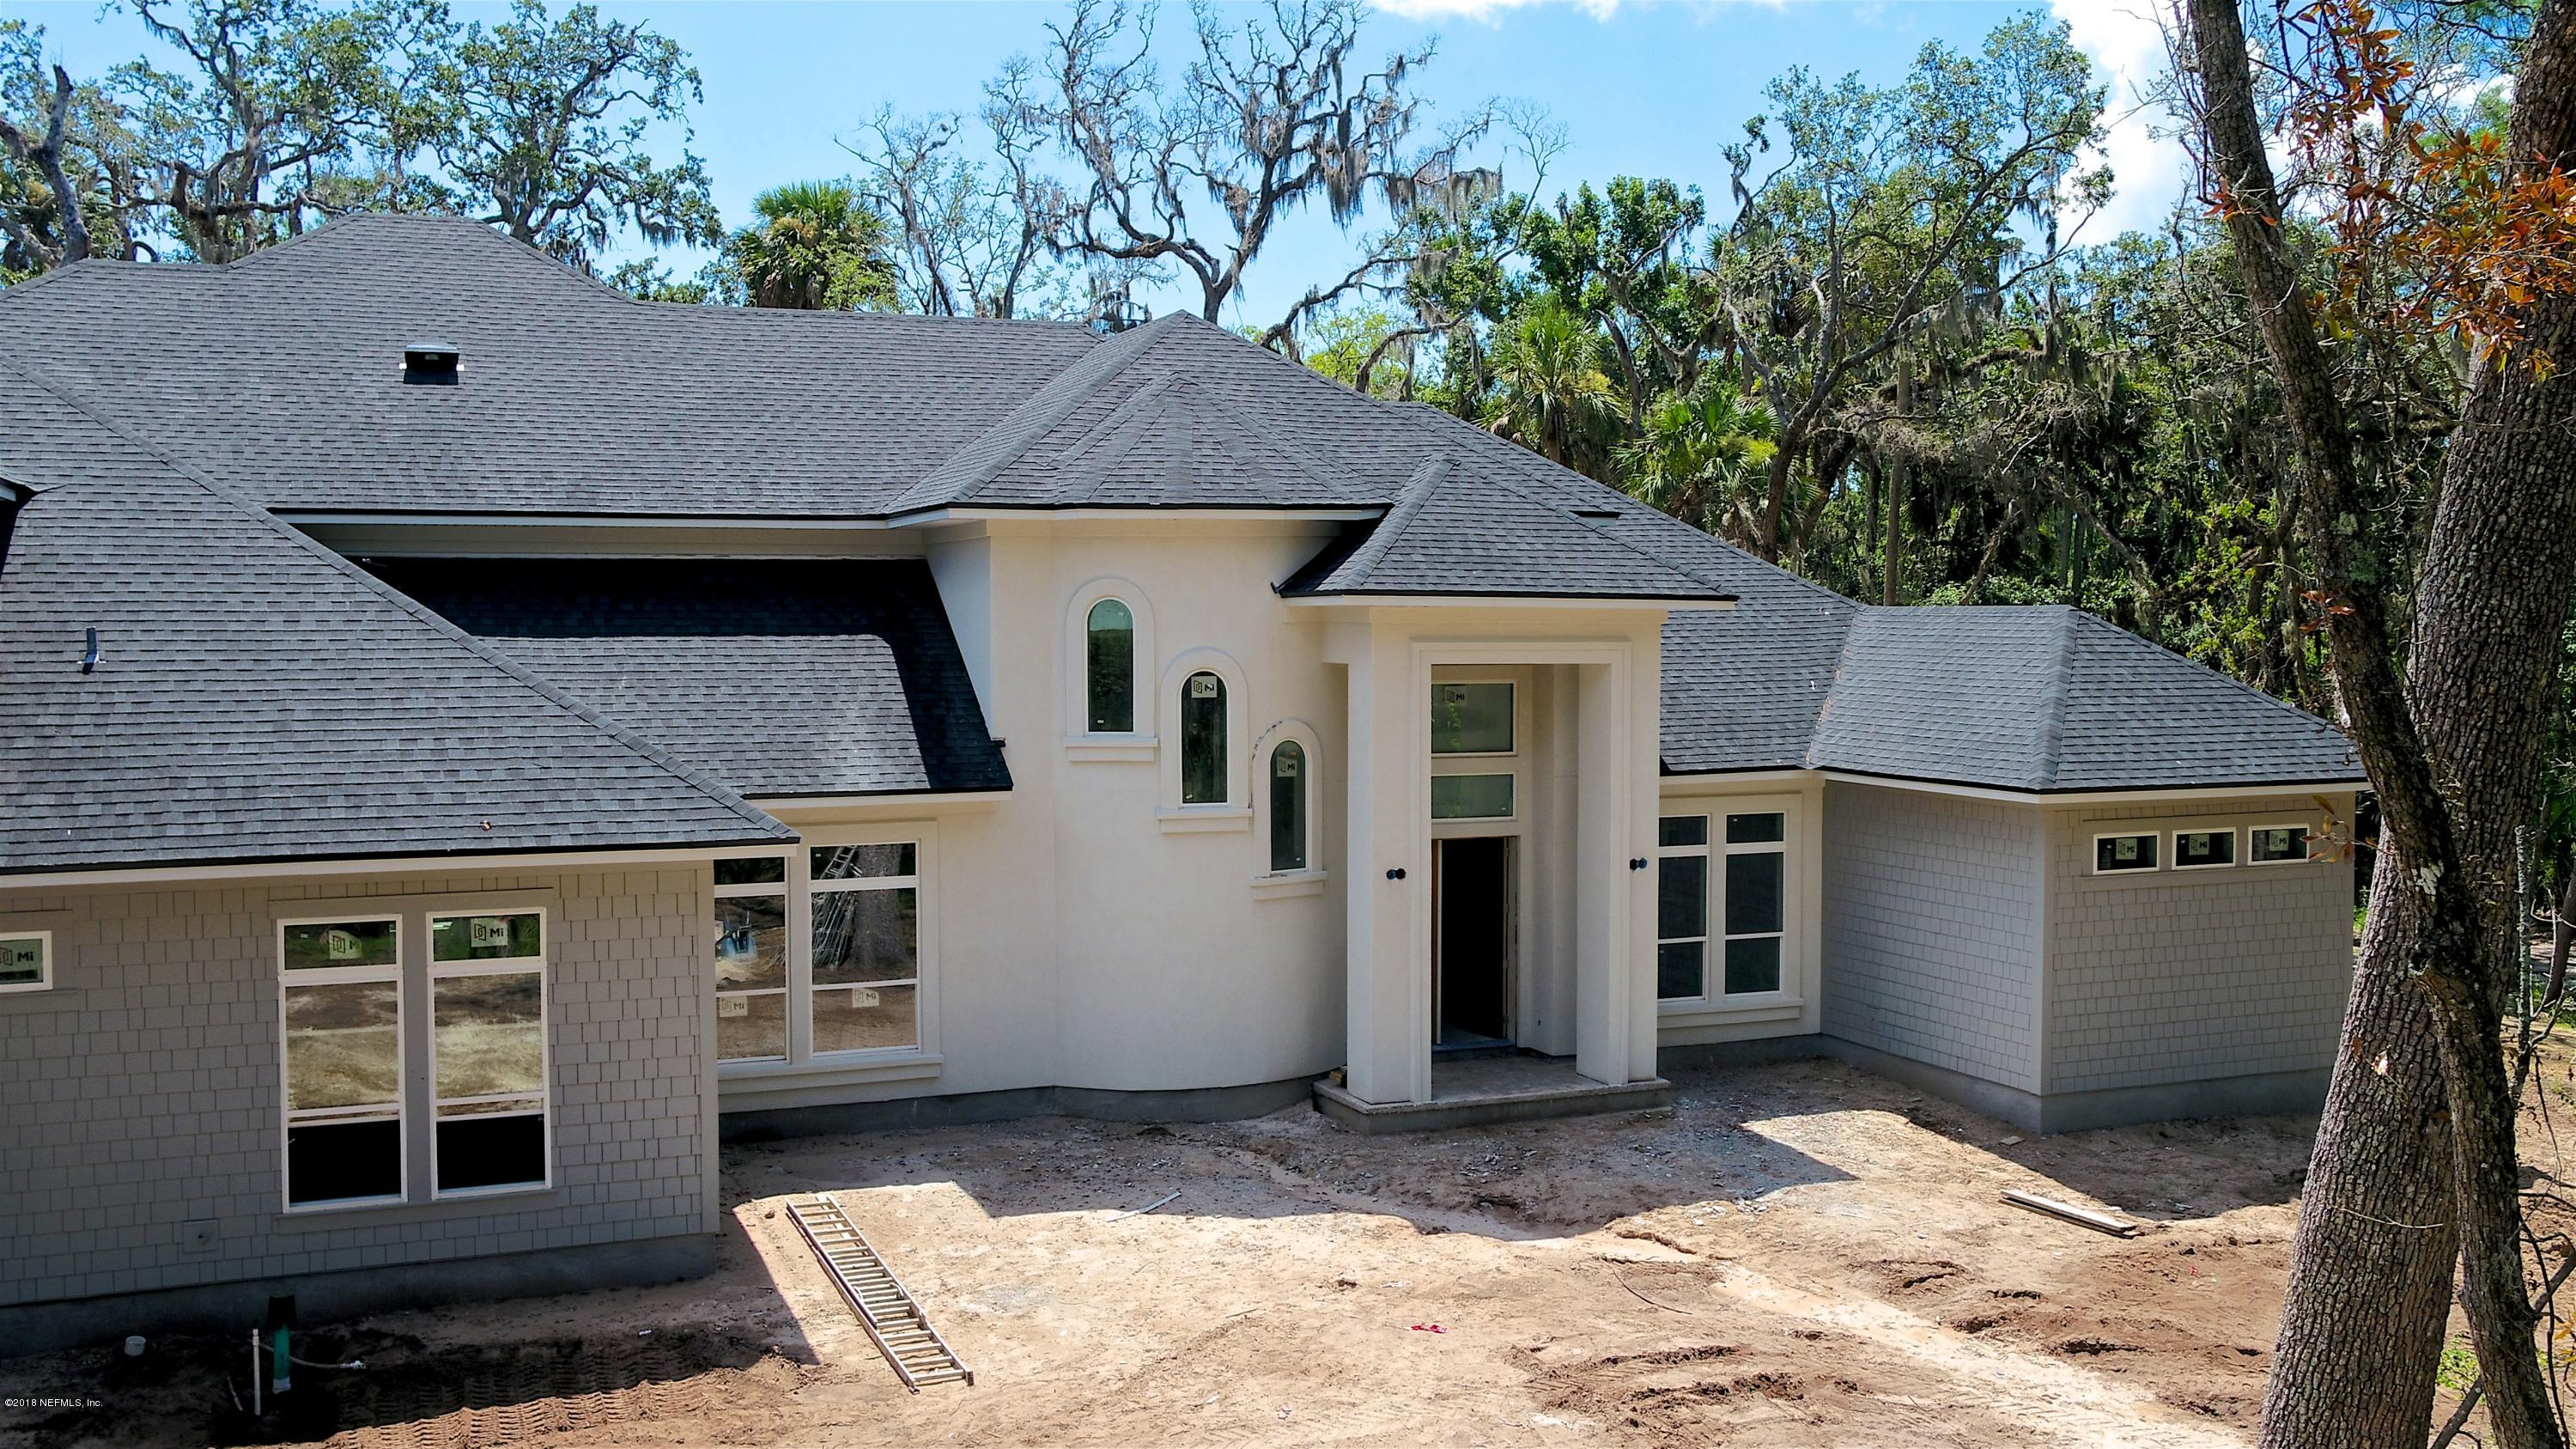 5010 BENTGRASS, PONTE VEDRA BEACH, FLORIDA 32082, 5 Bedrooms Bedrooms, ,5 BathroomsBathrooms,Residential - single family,For sale,BENTGRASS,914685